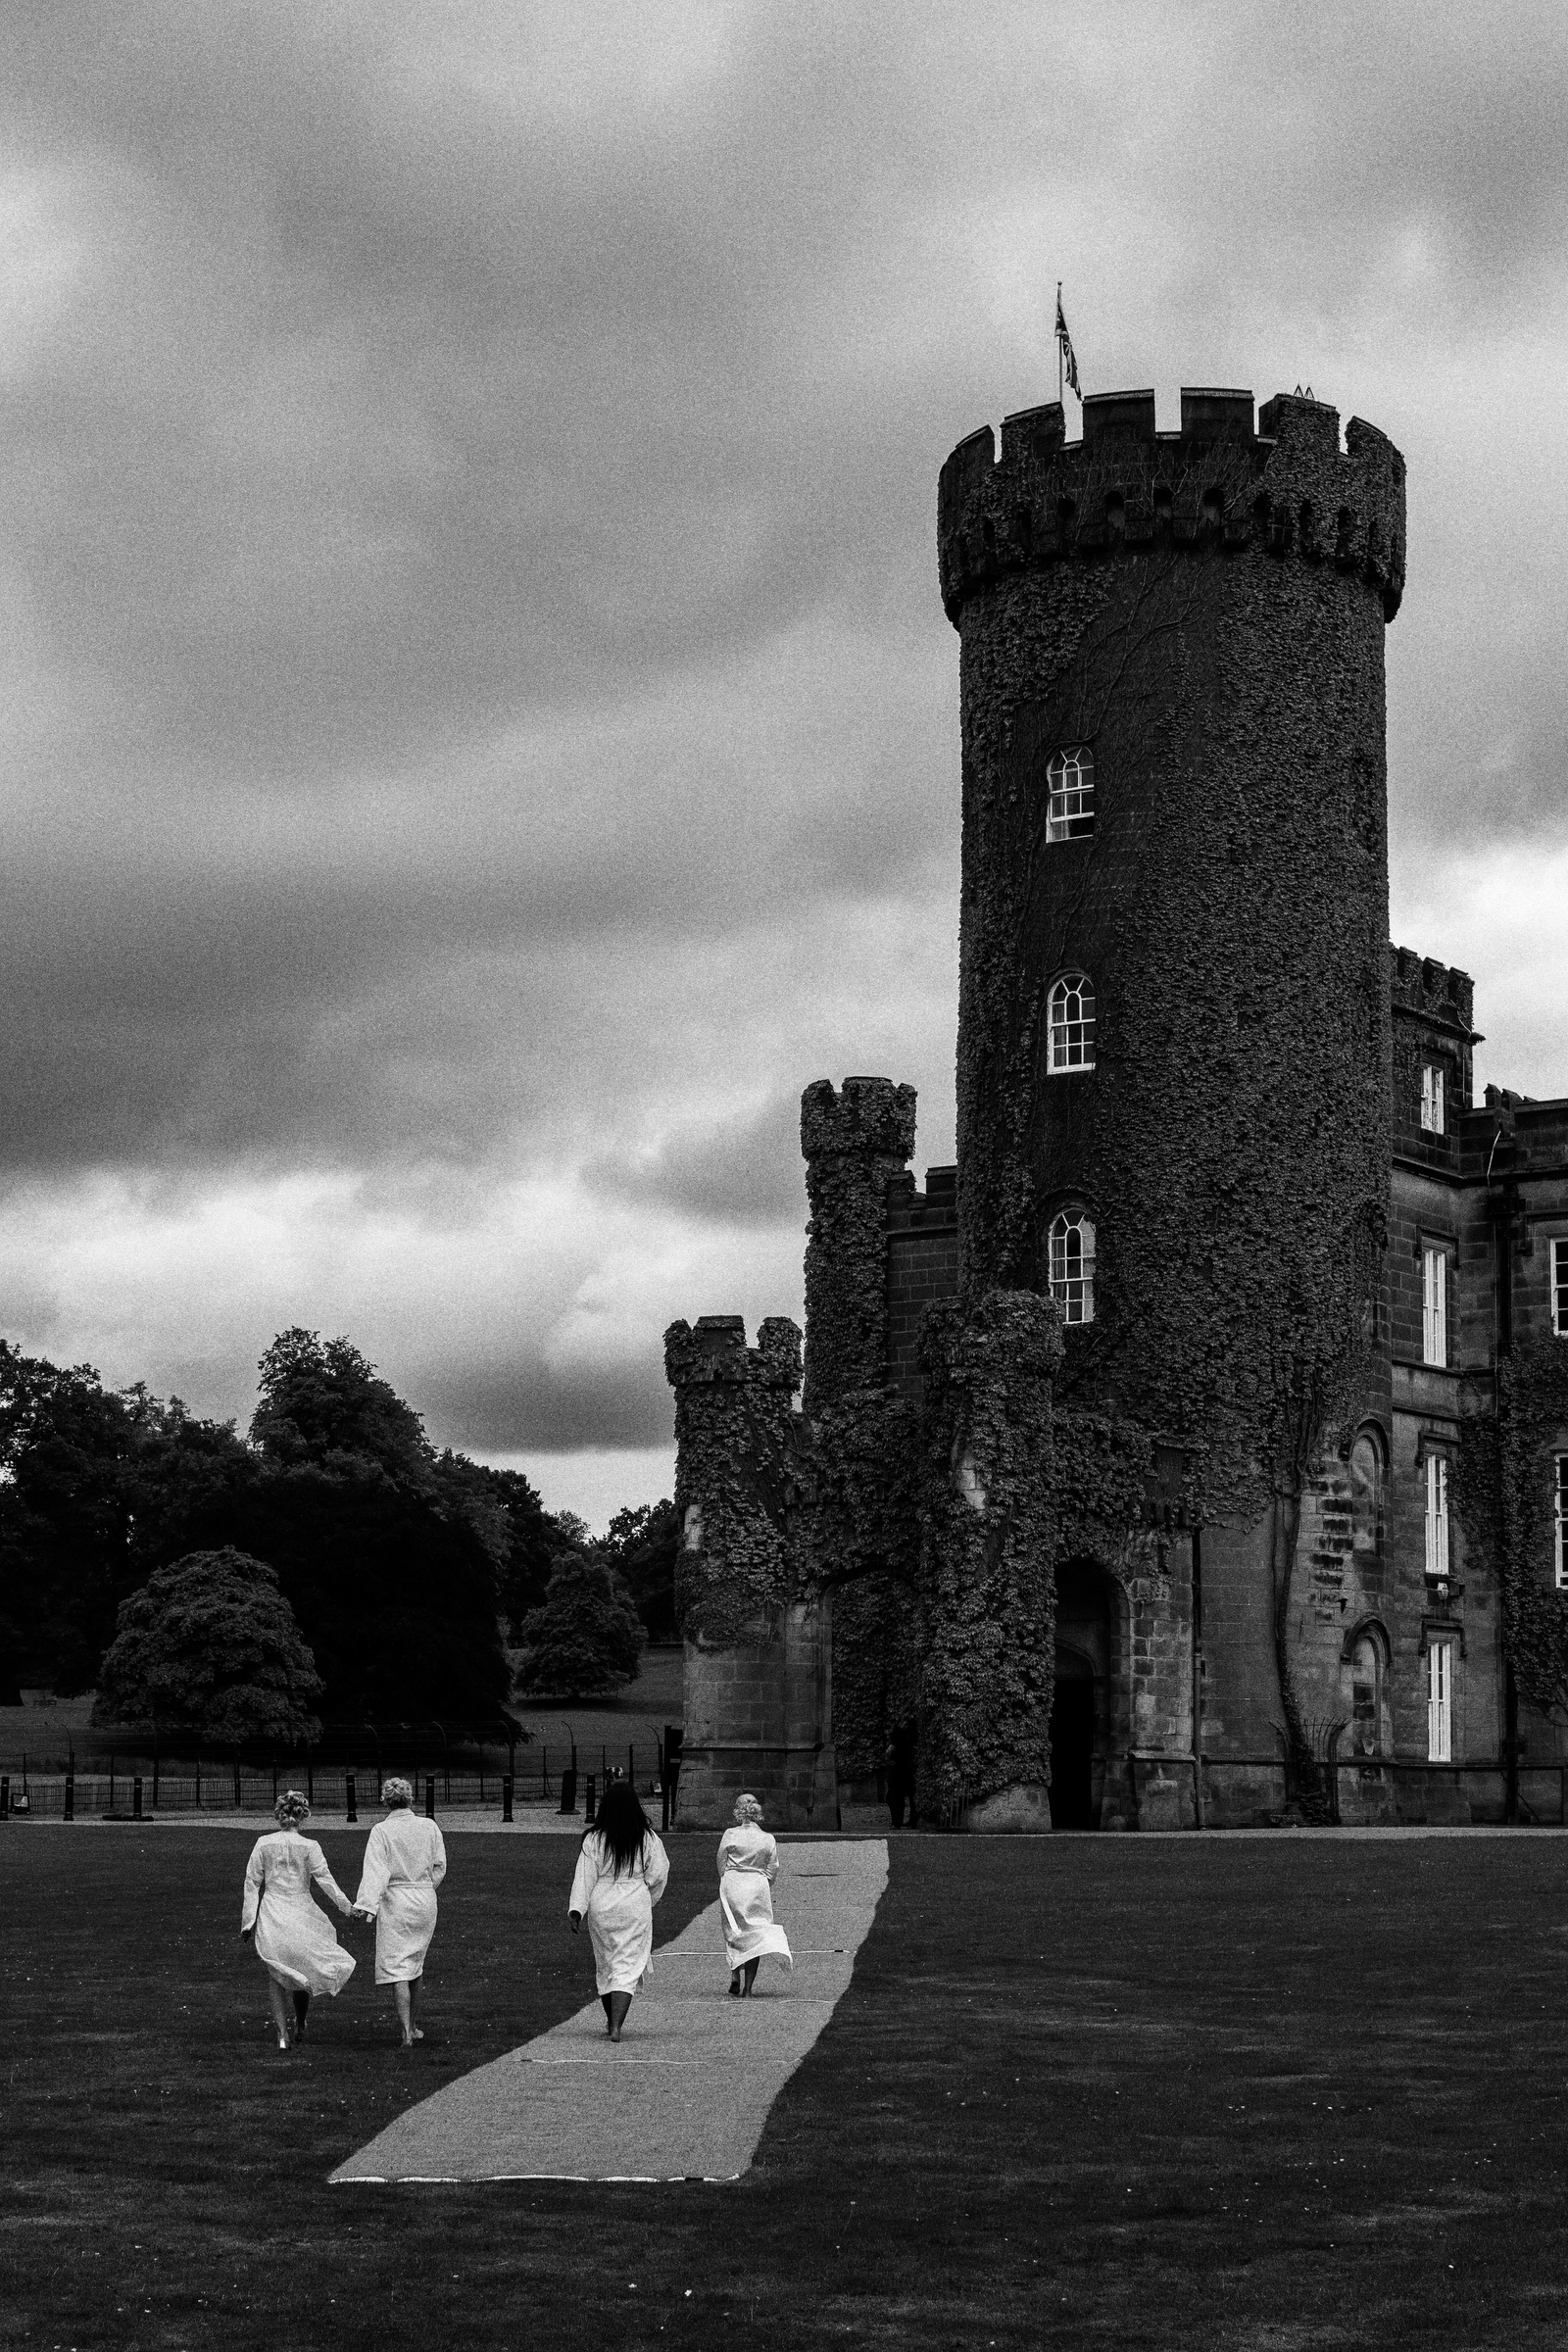 bridesmaids approach English castle in white robes - photo by Jeff Ascough